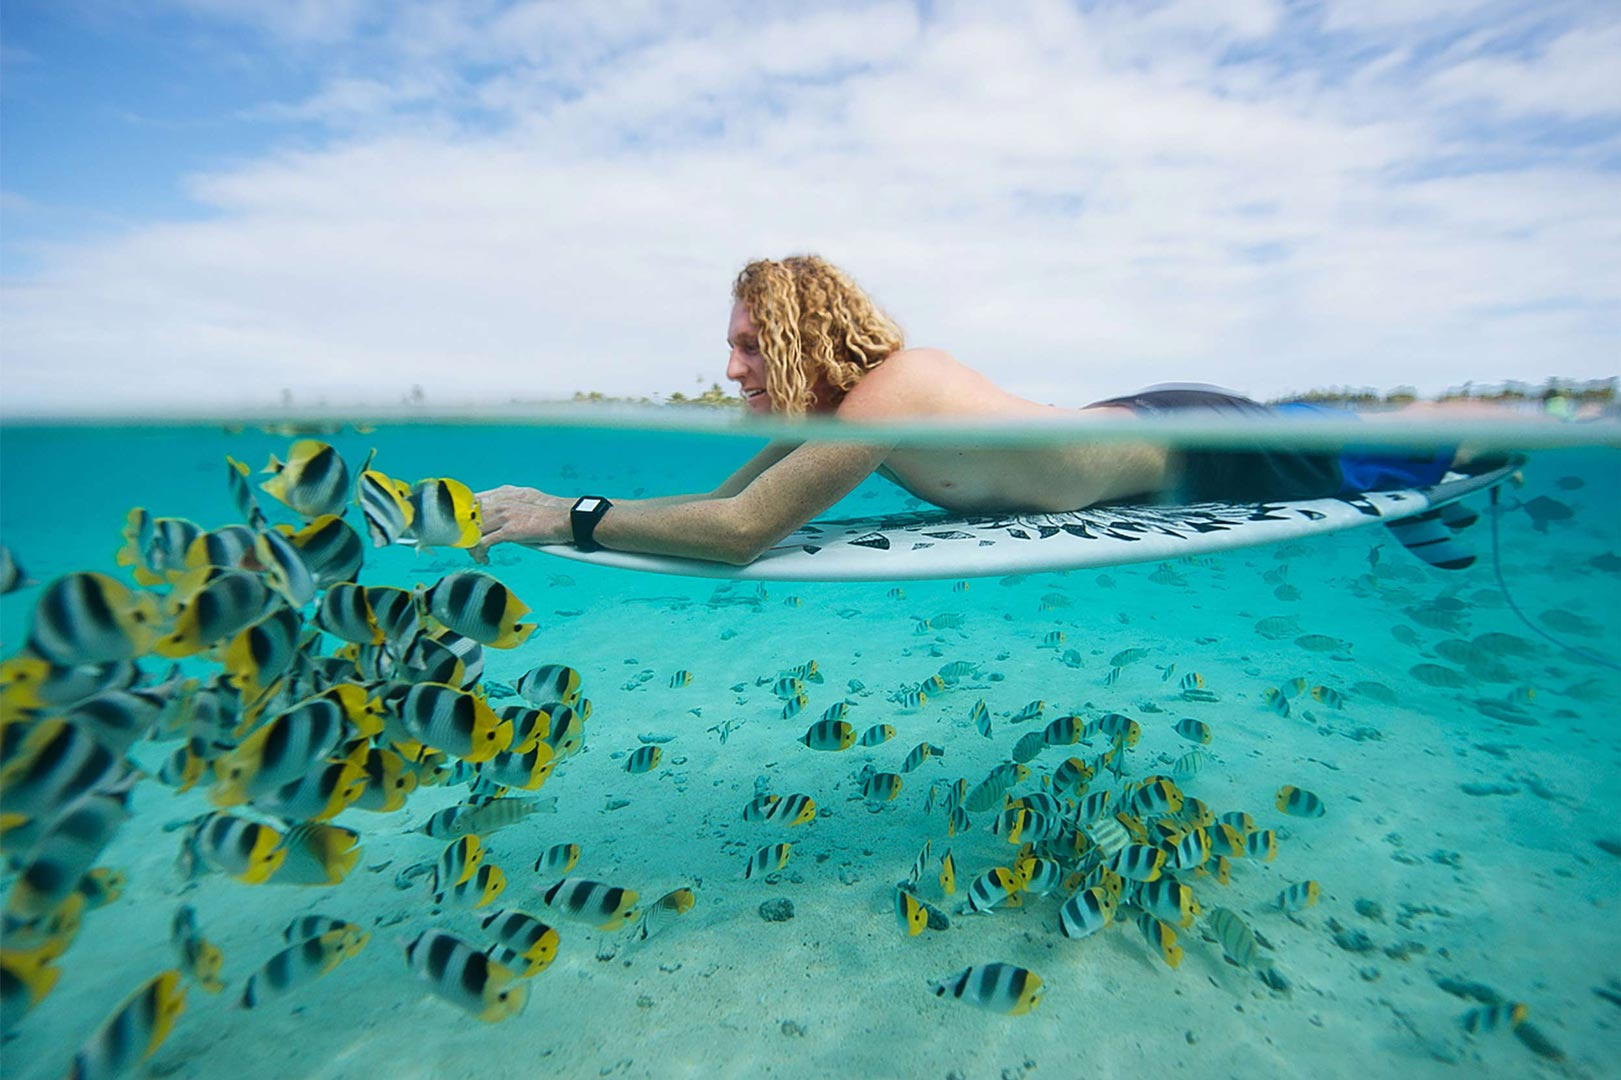 ACTIVE LIFESTYLE PHOTOGRAPHY Under over water photography - tropical fish + Rip Curl Surfer Luke Hynd